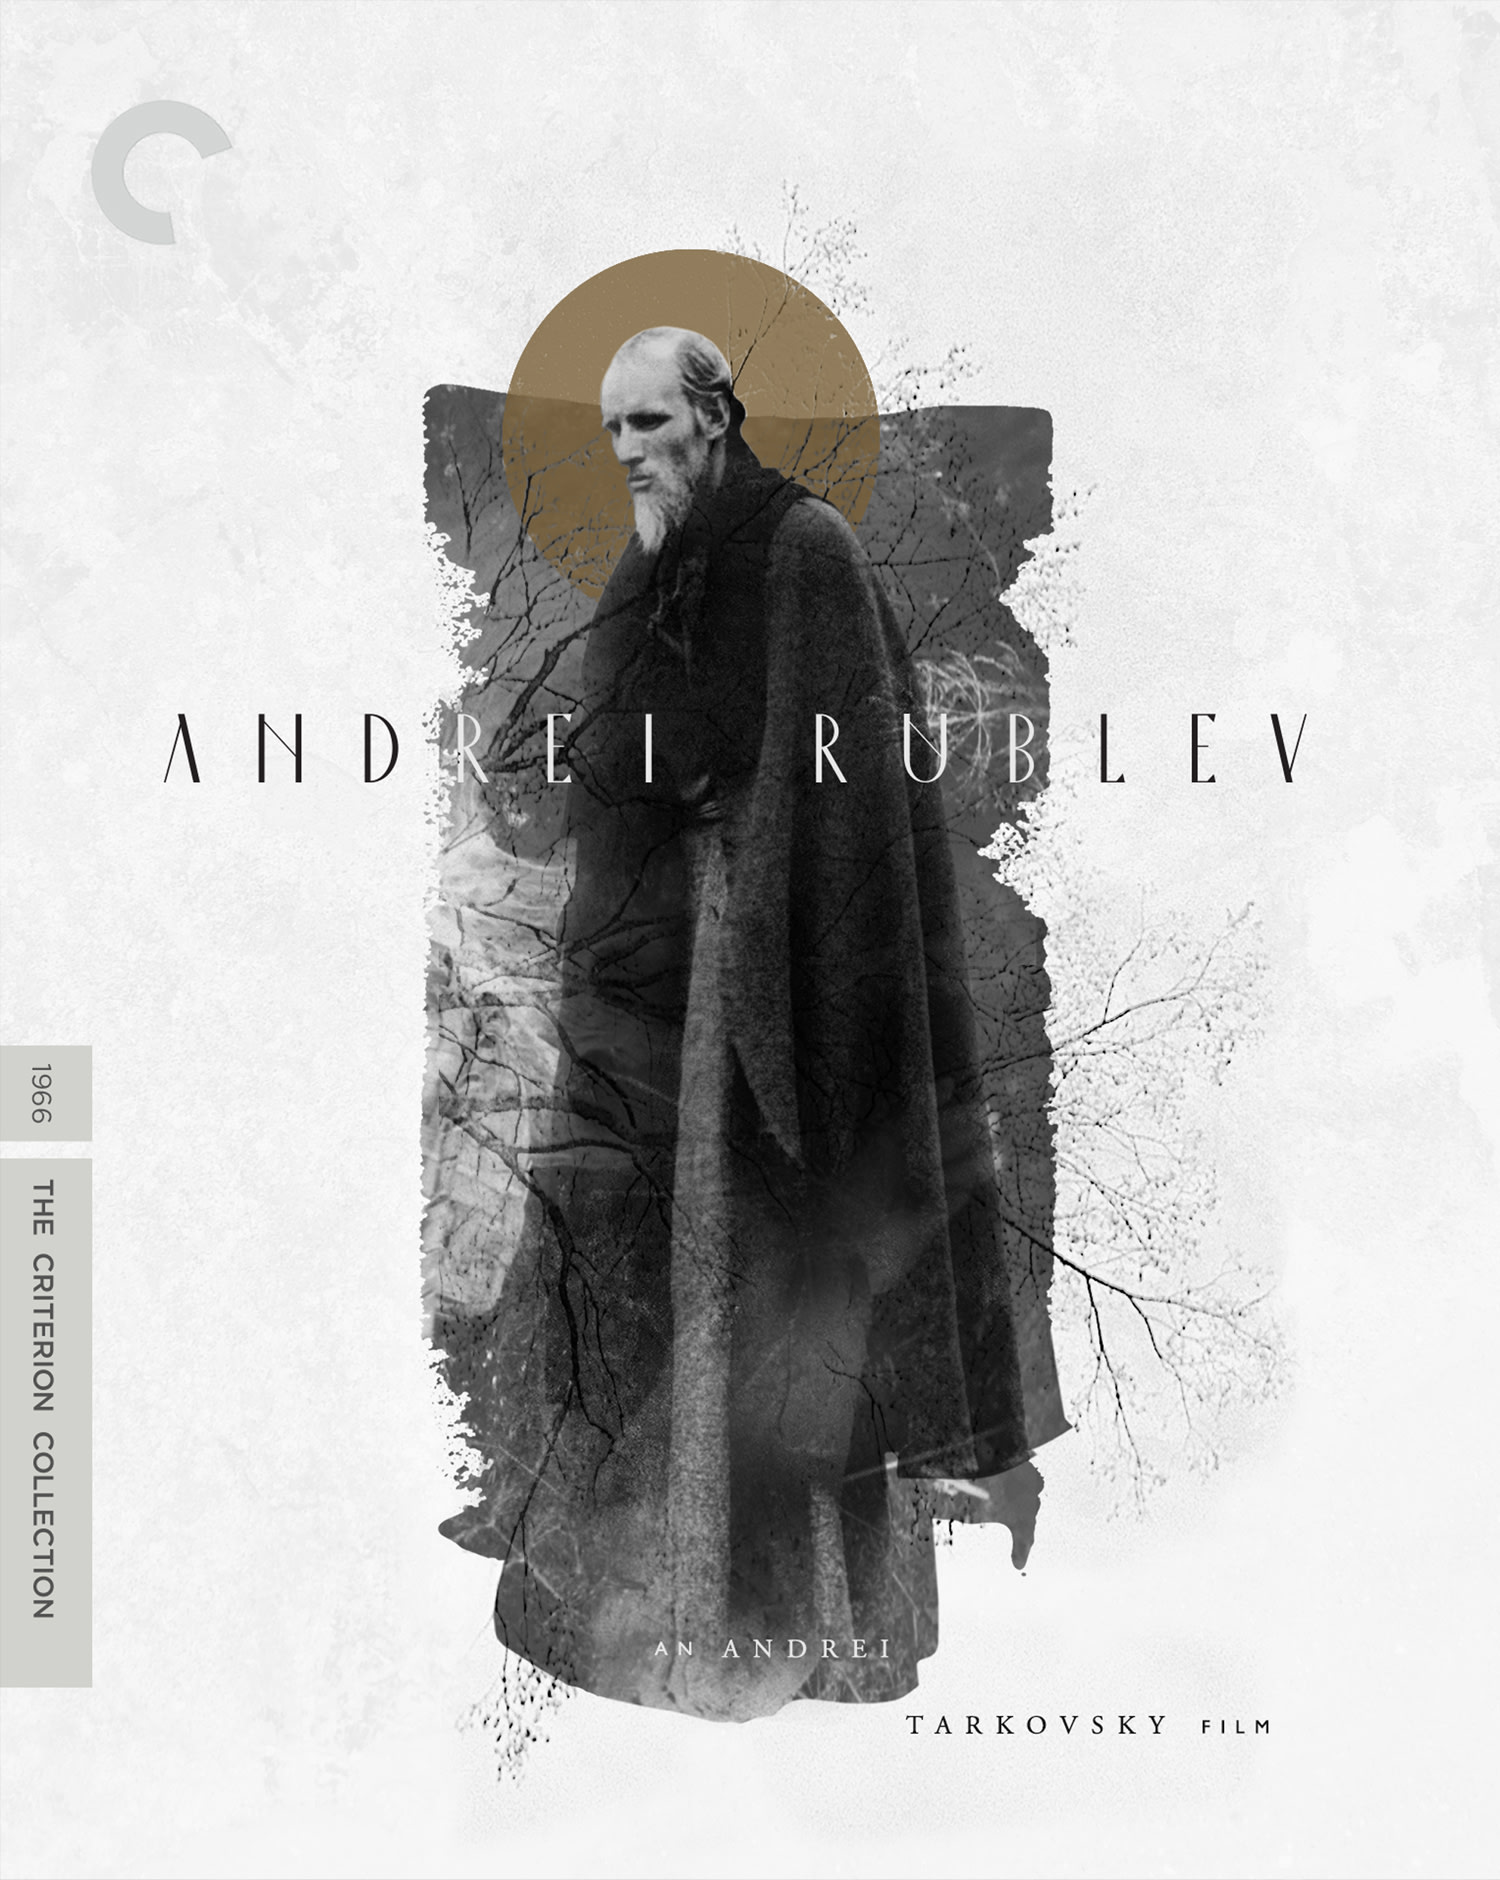 Andrei Rublev — The Criterion Collection